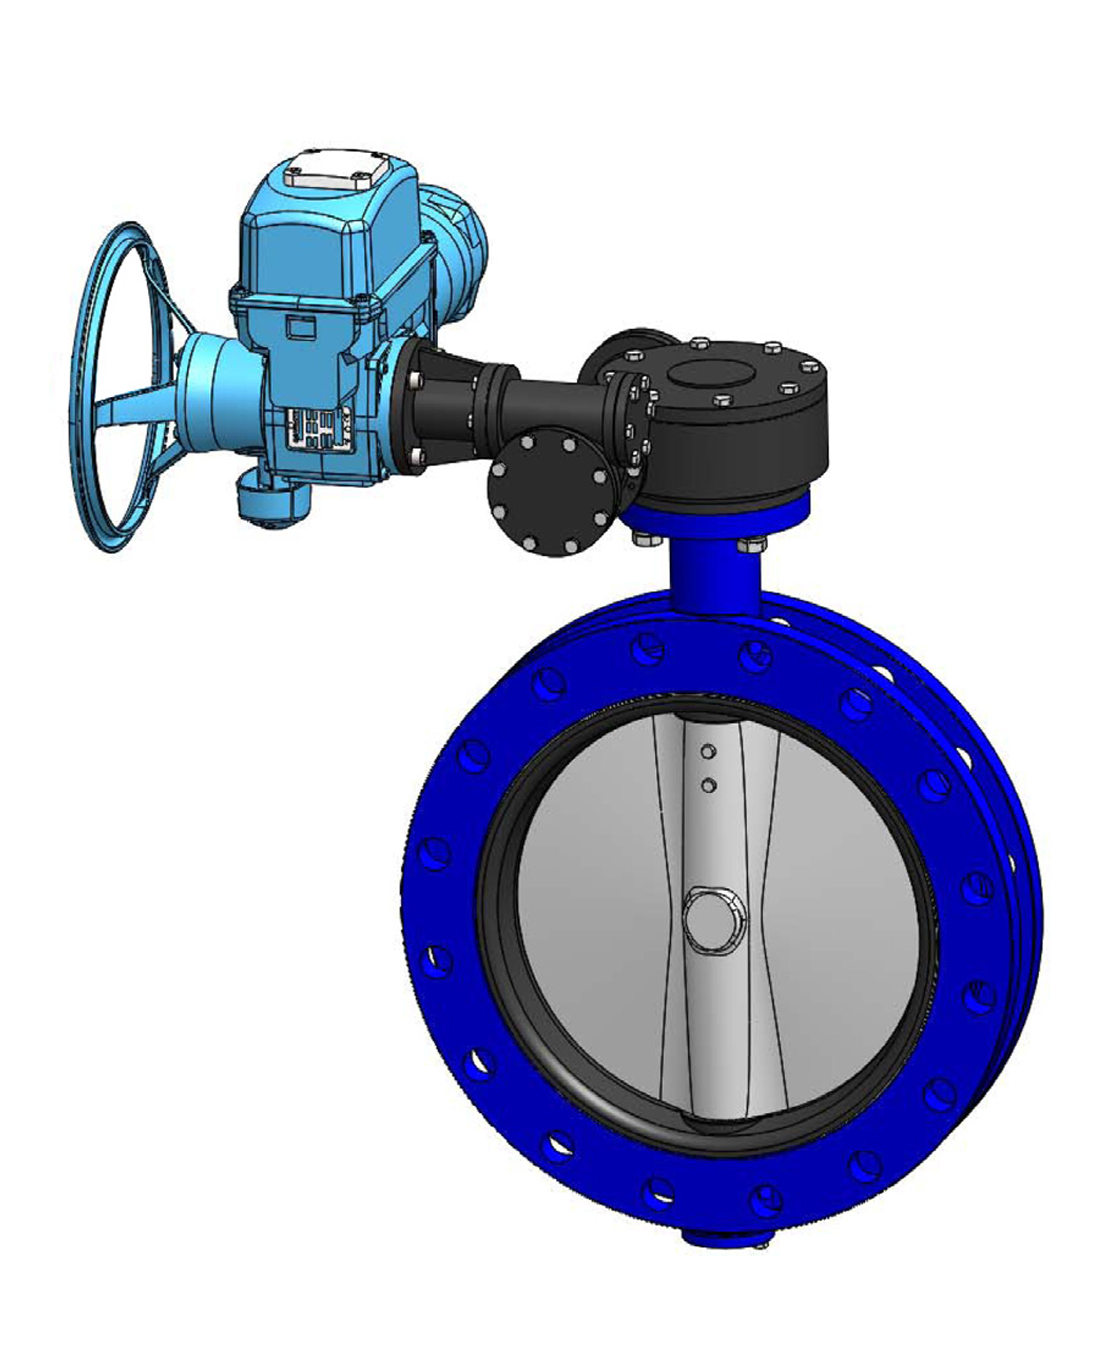 Double flanges type butterfly valve PN10 – ductile iron body – ductile iron disc – BERNARD electric operator